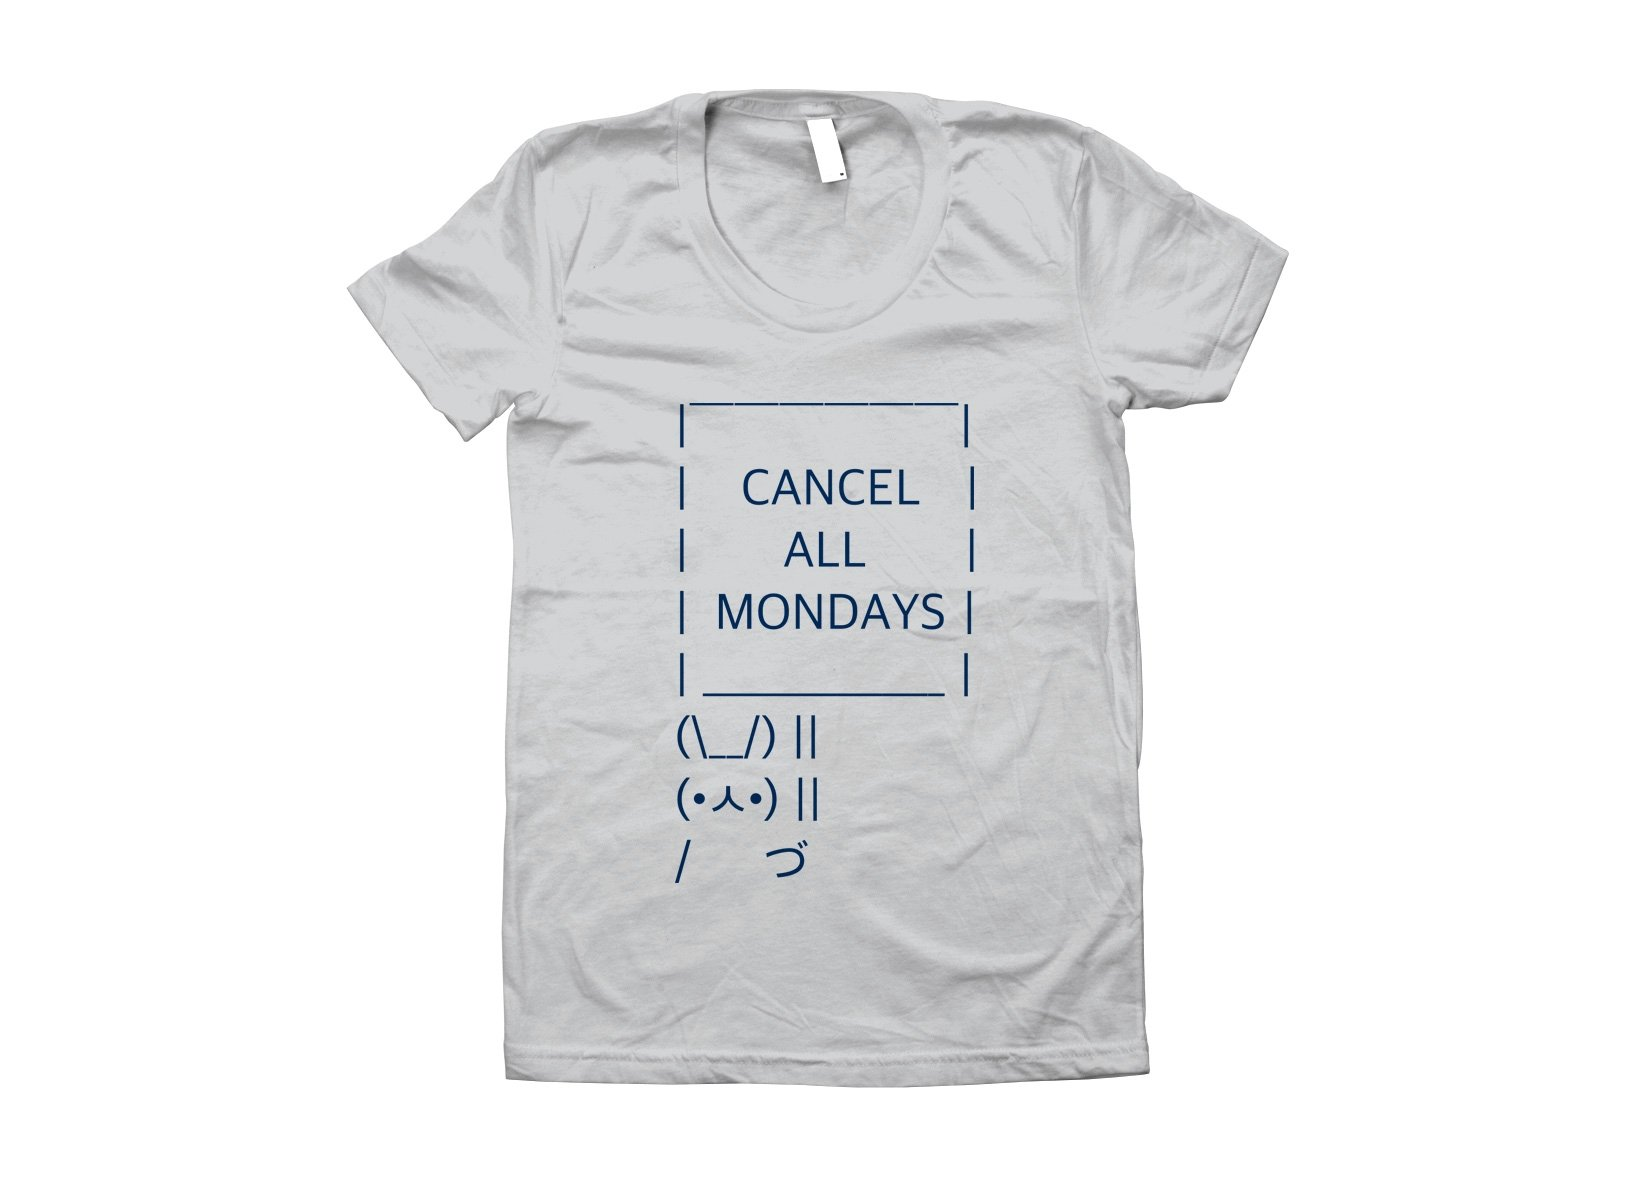 Cancel All Mondays Bunny on Juniors T-Shirt